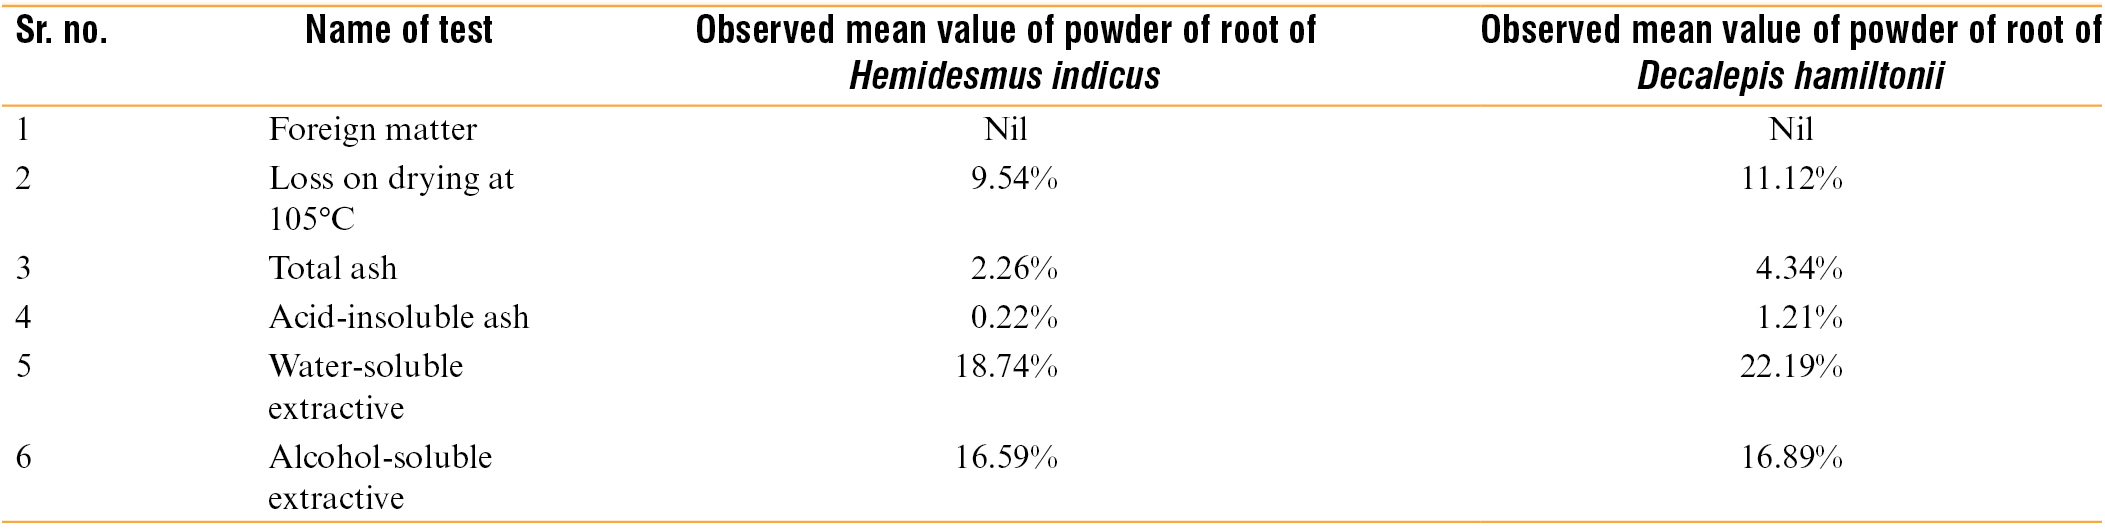 Table 6: Comparative physicochemical analysis of powder of root of <i>Hemidesmus indicus</i> and <i>Decalepis hamiltonii</i>